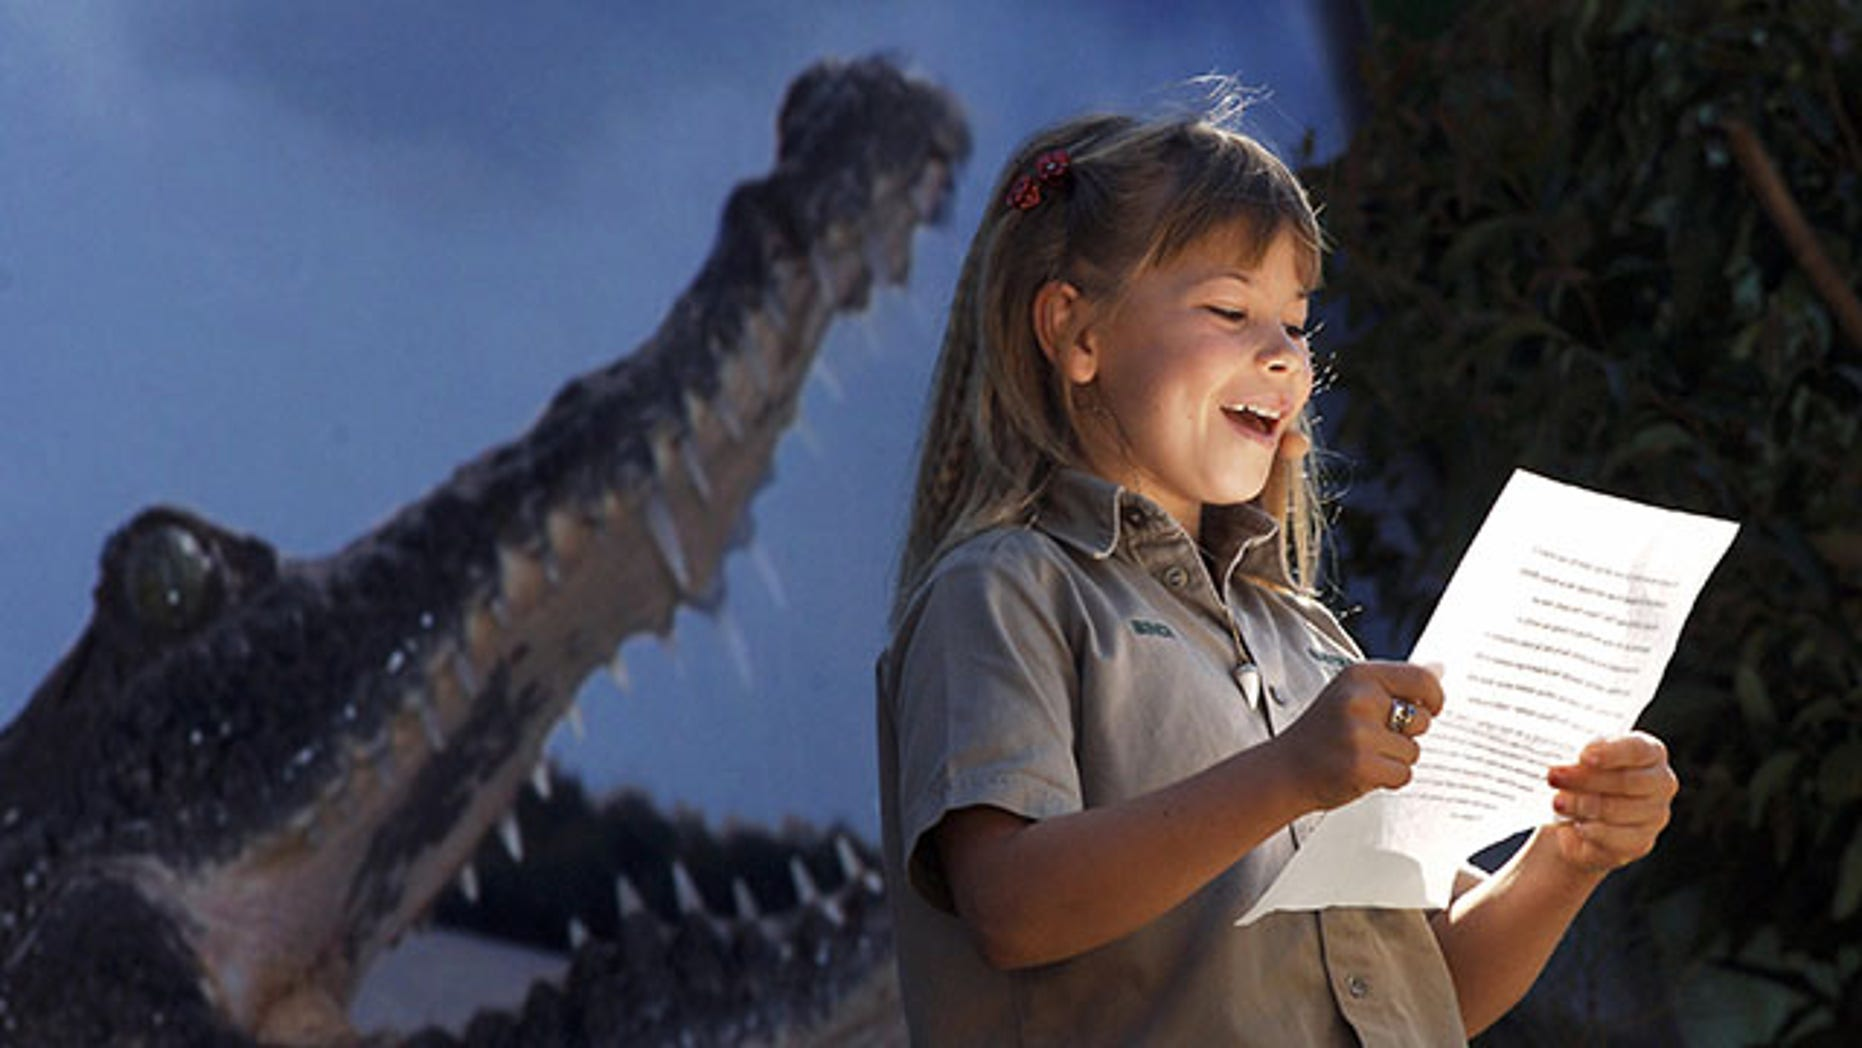 """BEERWAH, AUSTRALIA:  Eight-year-old Bindi Irwin, daughter of Australian environmentalist and television personality Steve Irwin, reads a tribute to her father during a memorial service for her husband at Australia Zoo in Beerwah, in the Australian state of Queensland, 20 September 2006. Family, friends, fans and movie stars bade a final farewell to """"Crocodile Hunter"""" Steve Irwin in a high-energy memorial service fuelled by laughter, tears and music. Irwin, known as the """"Crocodile Hunter"""", was killed 04 September by a stingray barb during a diving expedition.  AFP PHOTO/POOL/DAVE HUNT  (Photo credit should read DAVE HUNT/AFP/Getty Images)"""